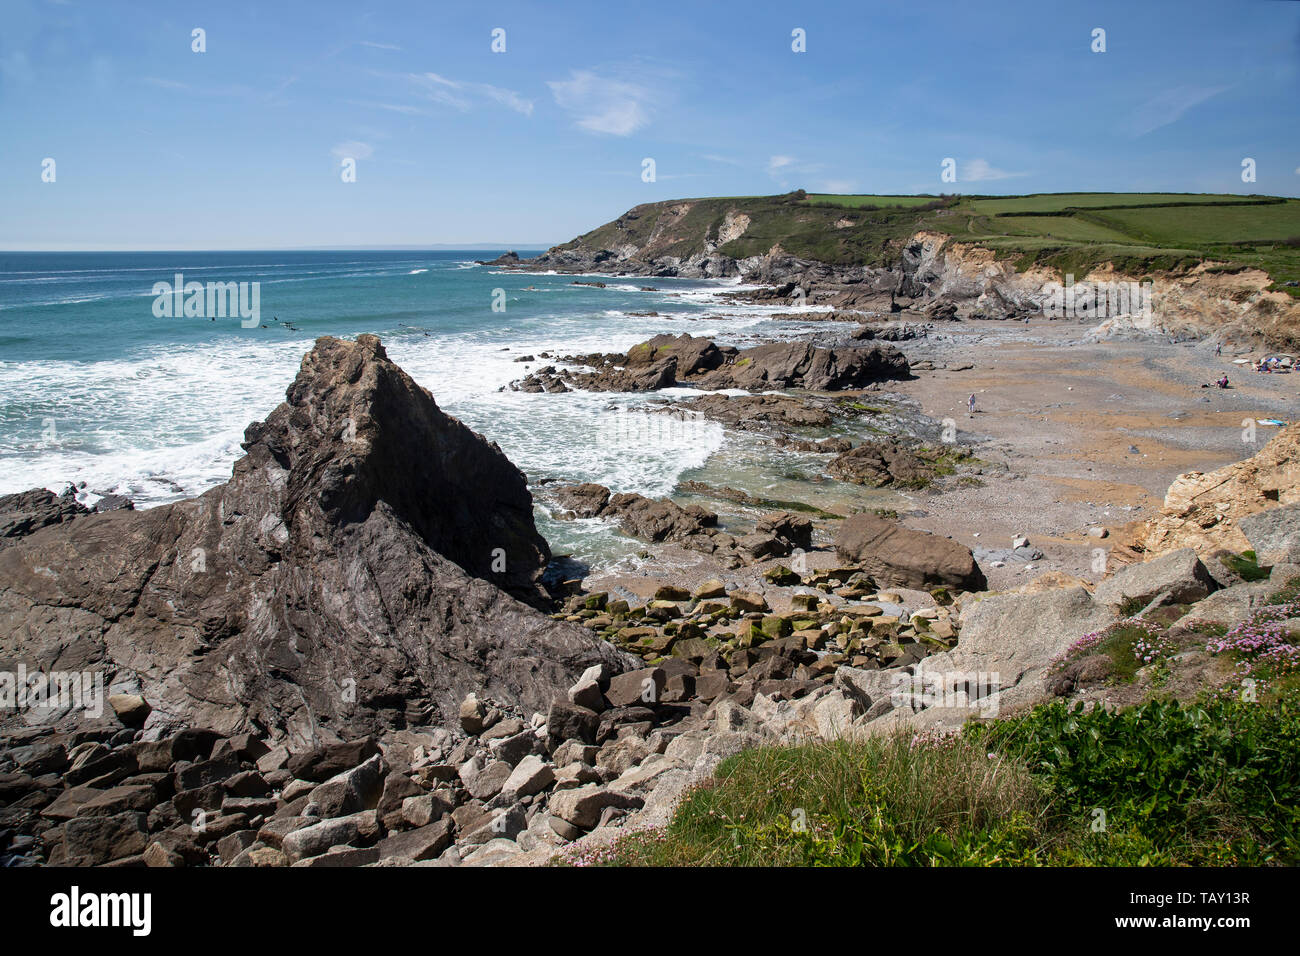 The rugged Cornish coast and Atlantic ocean at Gunwalloe cove on the West of the Lizard peninsula with surfers and holidaymakers - Stock Image